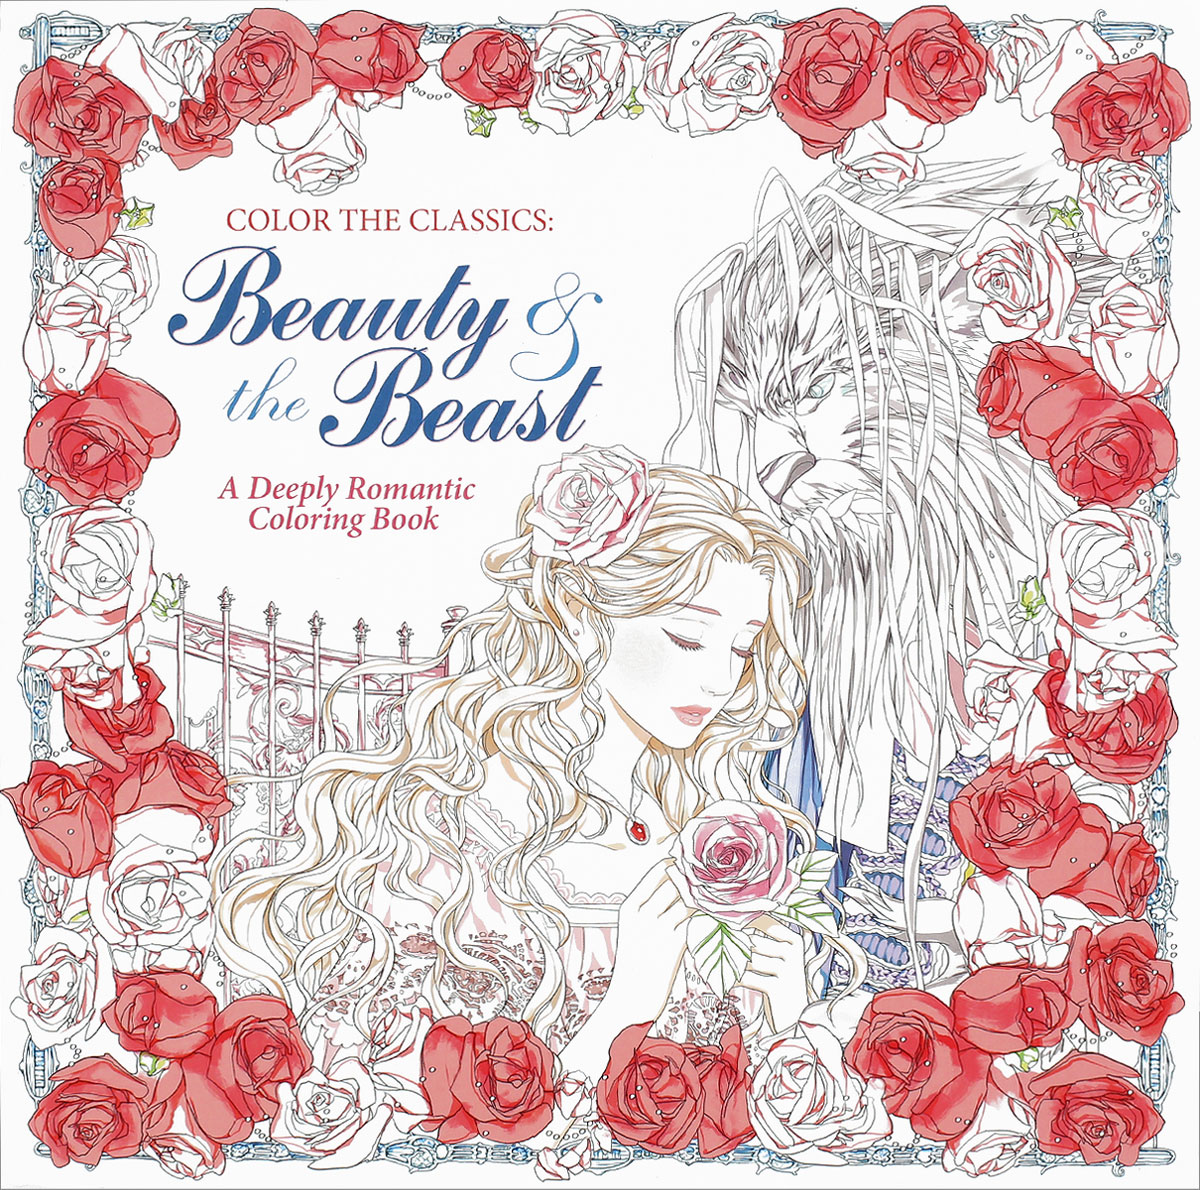 Color the Classics: Beauty & the Beast: A Deeply Romantic Coloring Book beauty and the beast teacher s book книга для учителя